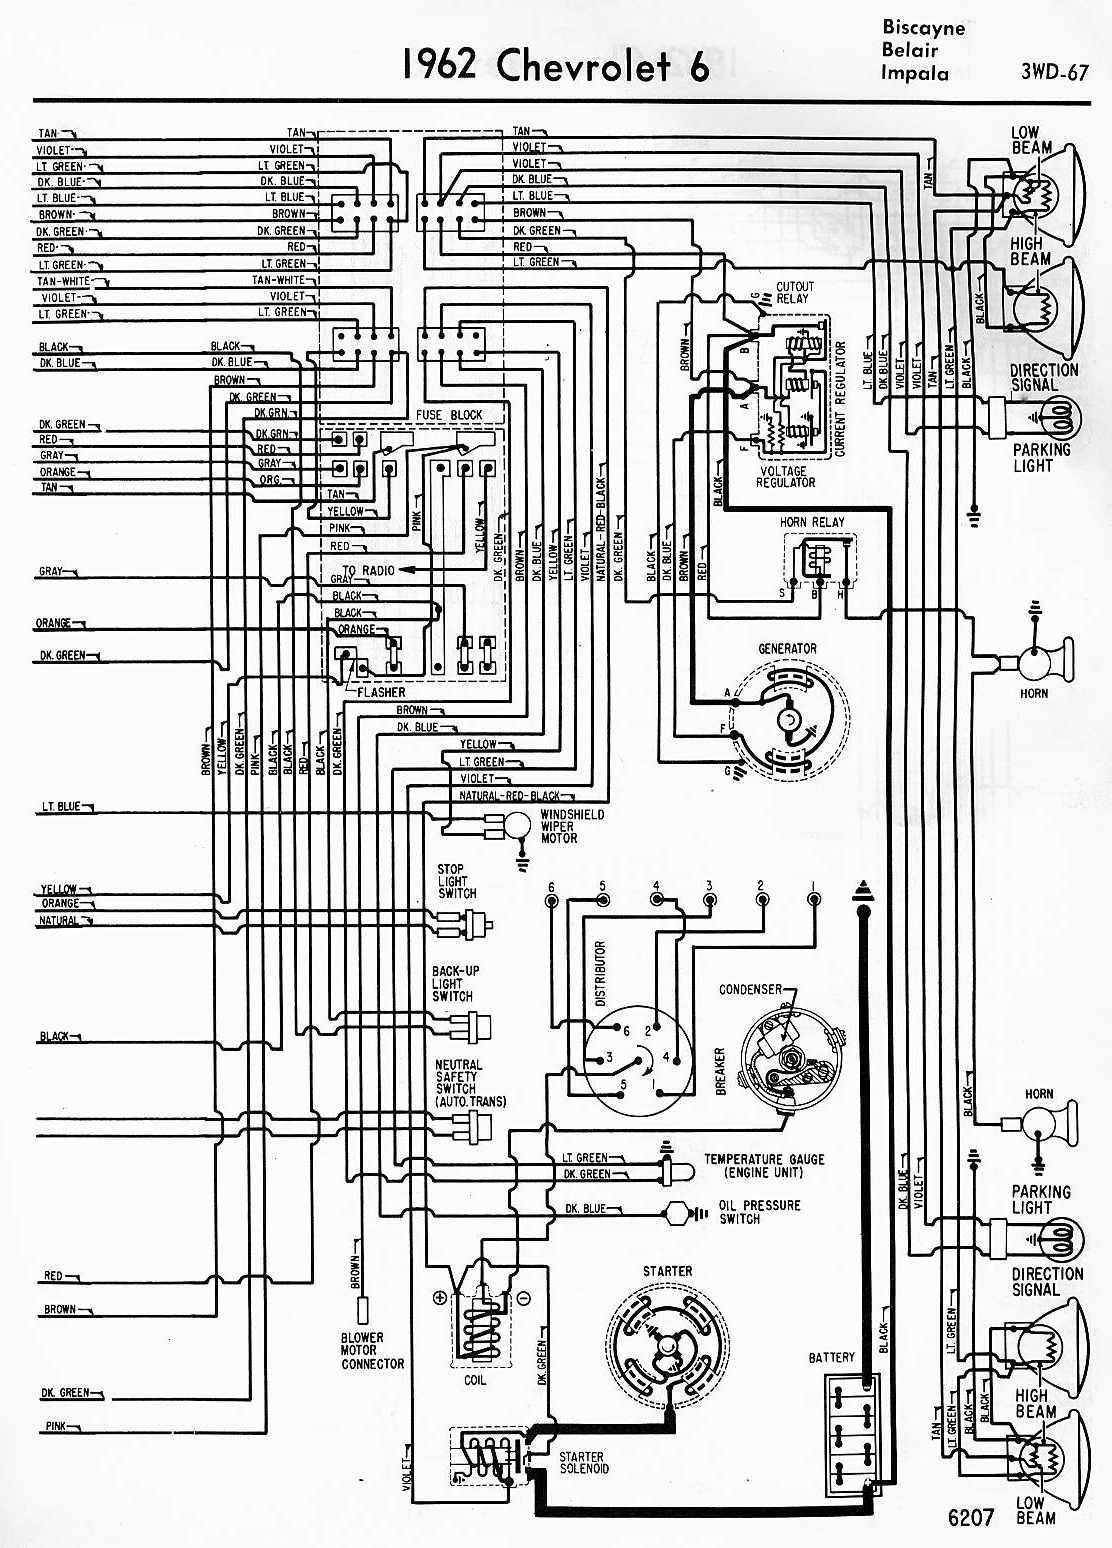 64 comet wiring harness wiring diagram data today  1964 mercury comet wiring as well as 1966 mustang ignition wiring 64 comet wiring harness